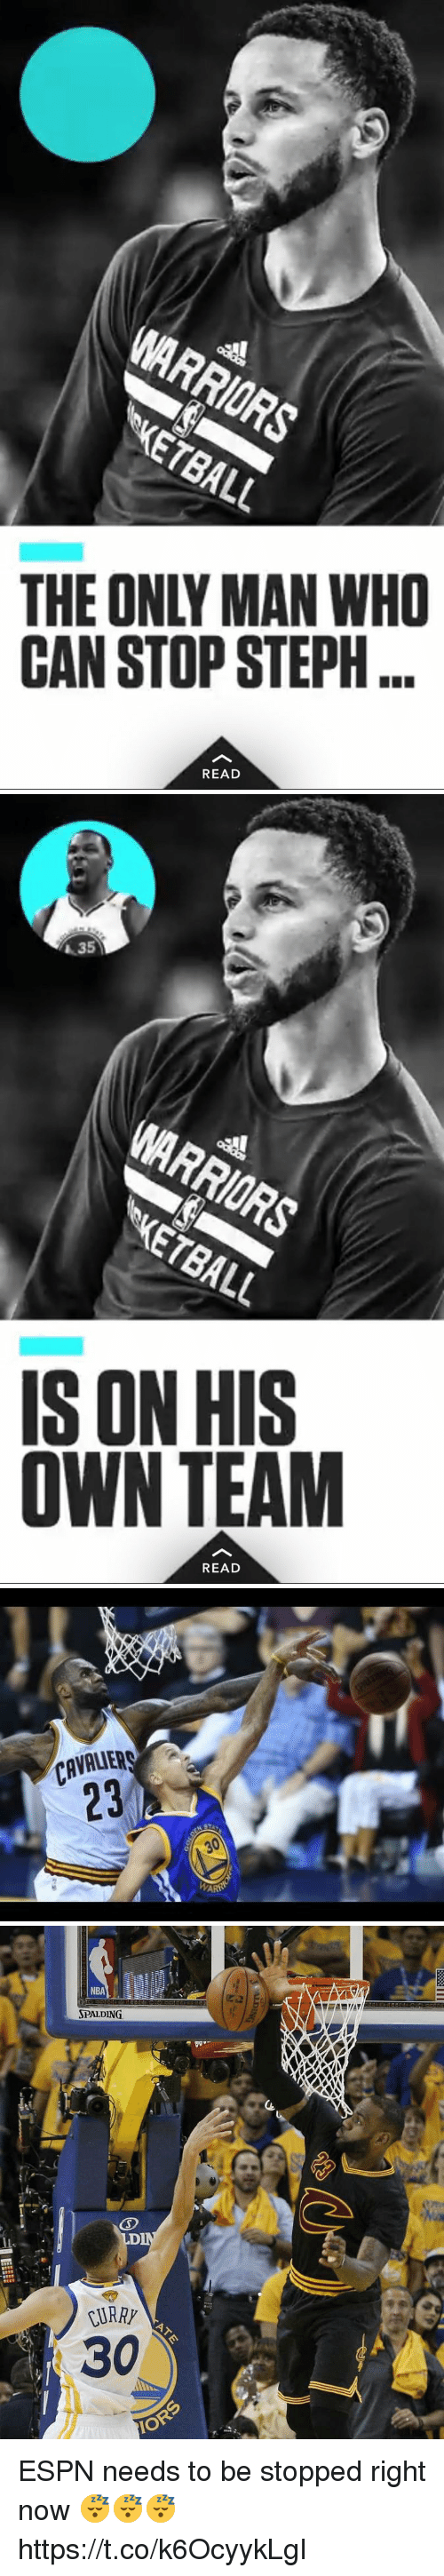 Espn, Nba, and Hood: MARRIORS  CAN STOP STEPH...  READ   L.35  MARRIORS  ISON HIS  OWN TEAM  READ   CAVALIER   NBA  SPALDING  AT  30  IOR ESPN needs to be stopped right now 😴😴😴 https://t.co/k6OcyykLgI